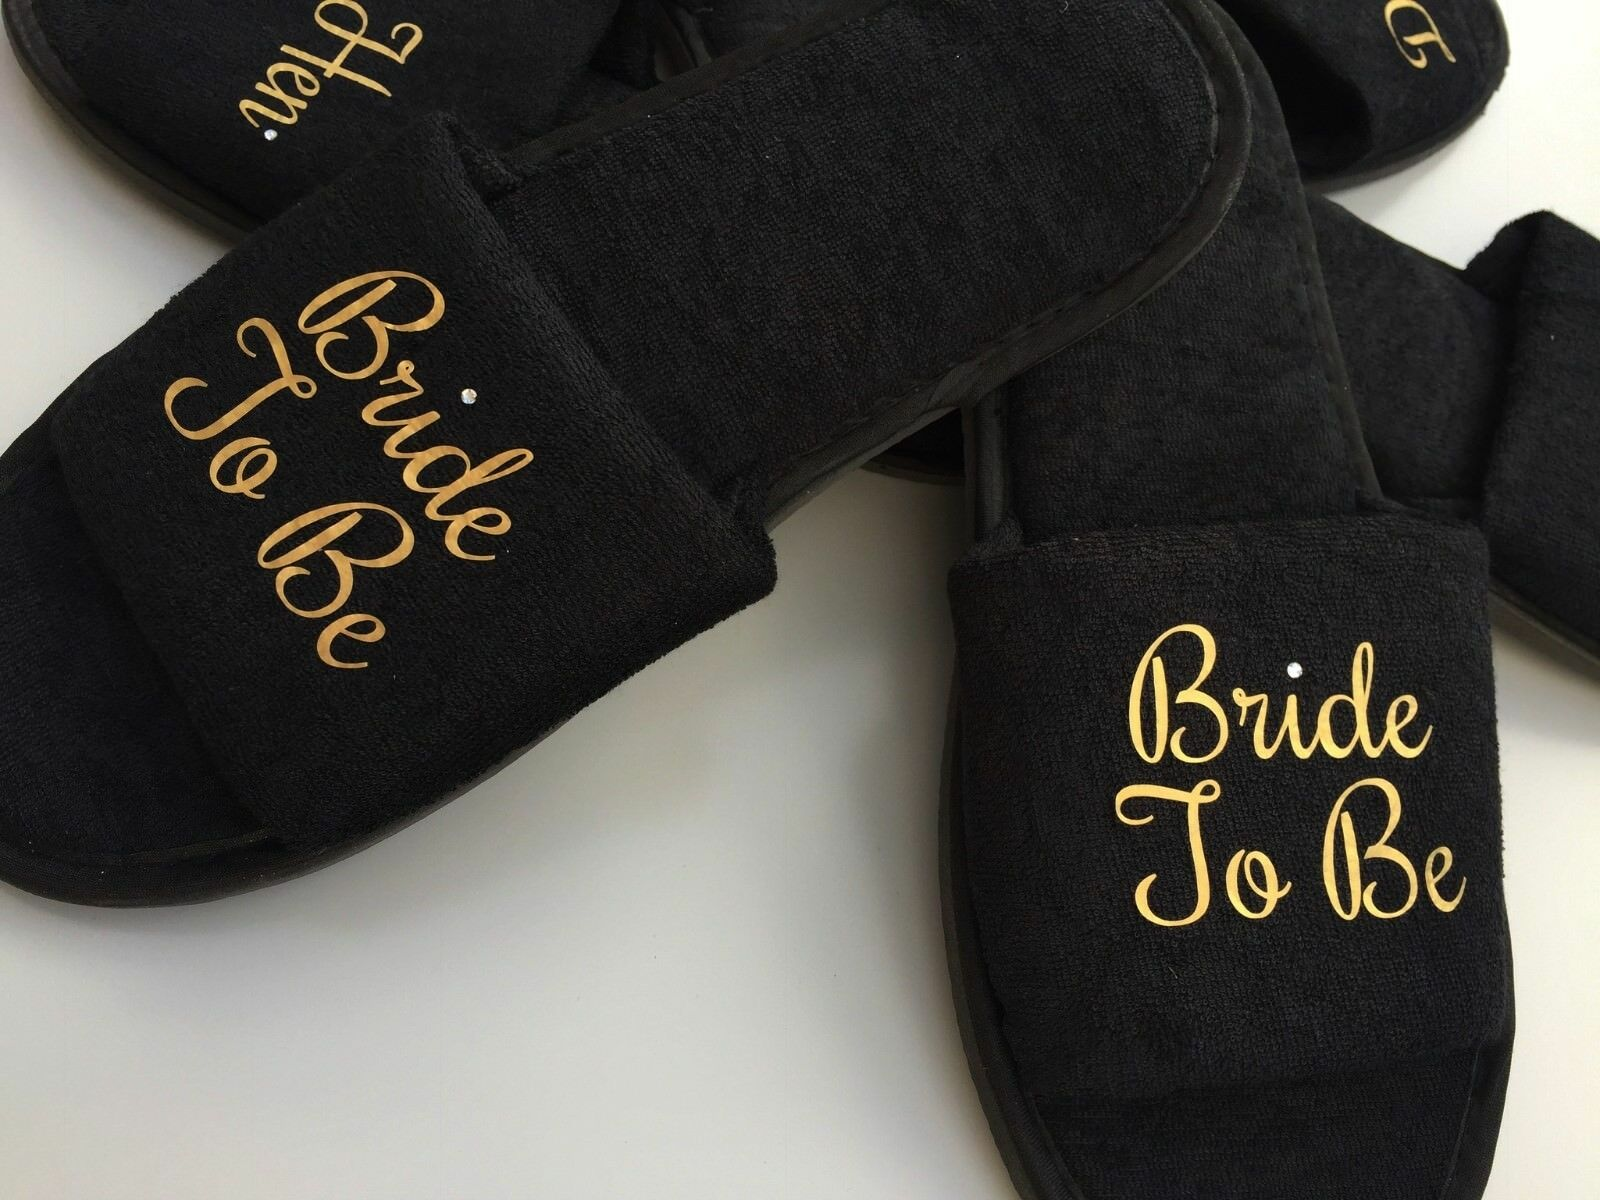 Bride slippers personalised black open toe spa day slippers Bride bridesmaid name groom gift db0859